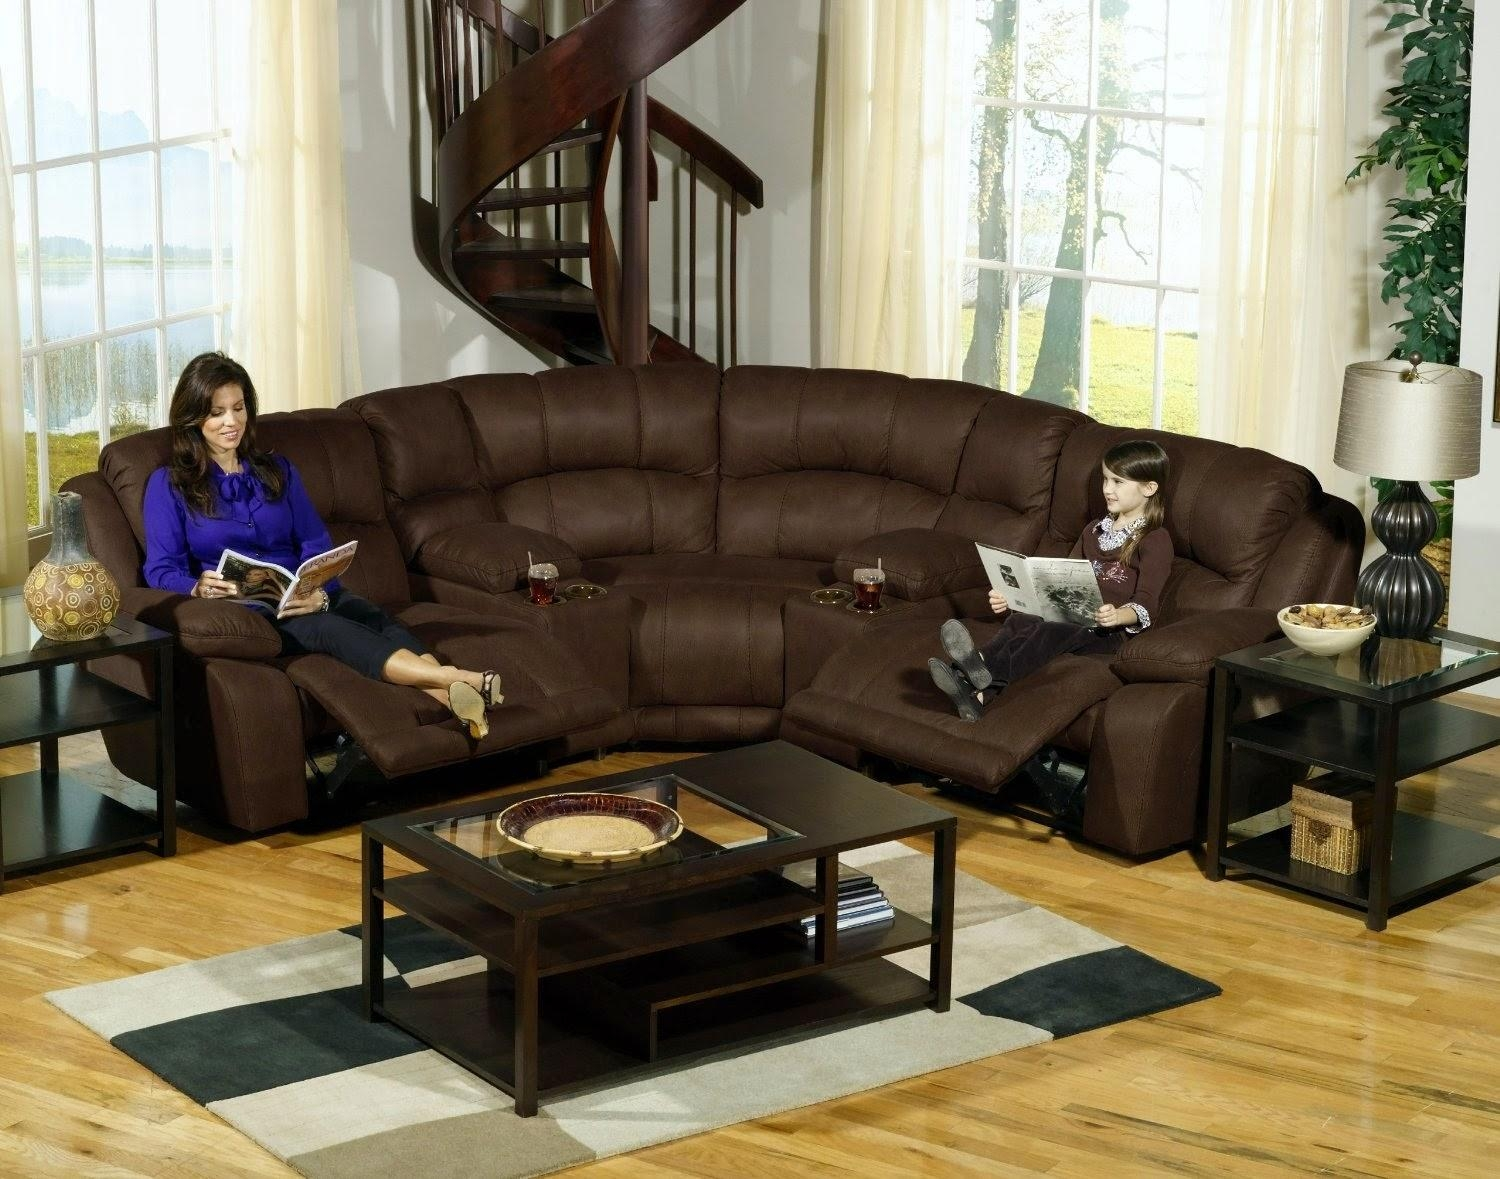 Furniture: Fantastic Sectional Couches With Recliners For Your With Regard To Small Microfiber Sectional (Image 7 of 20)